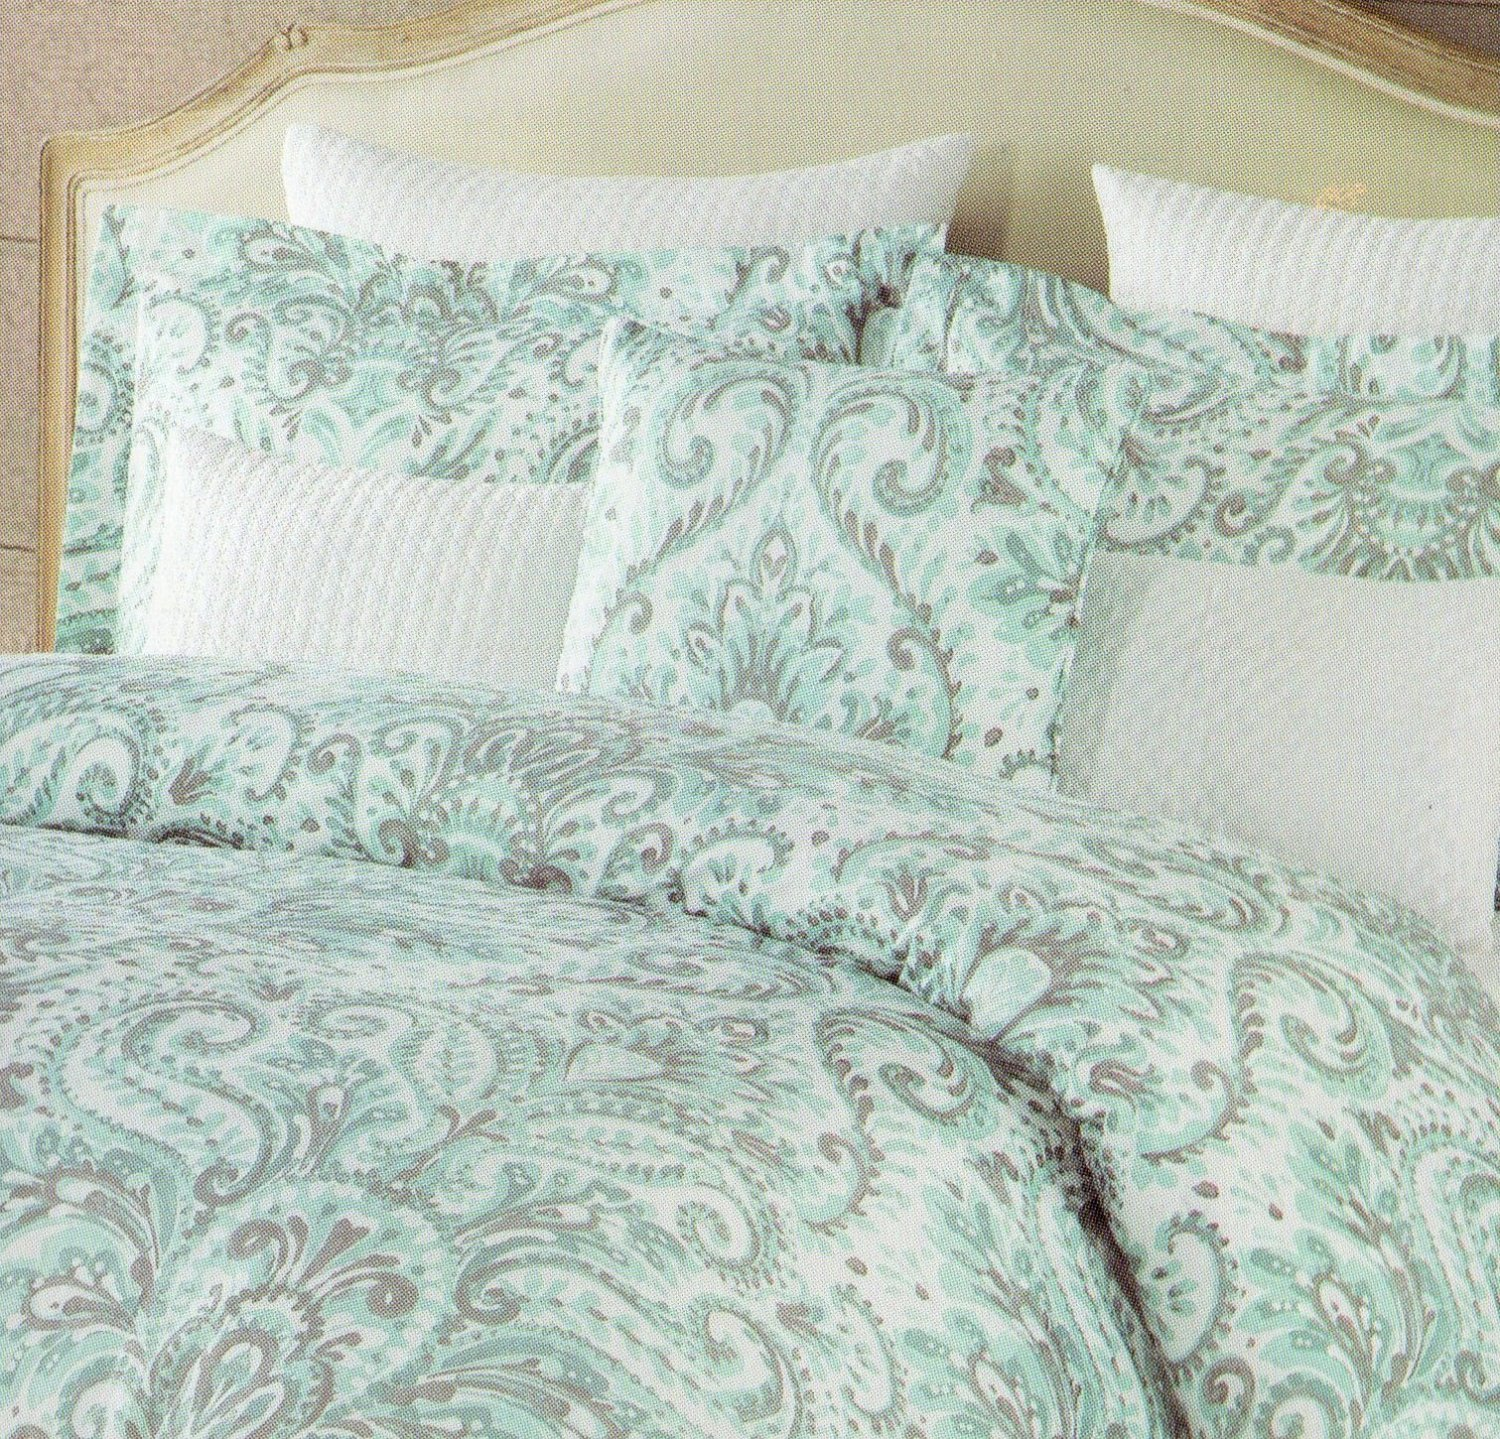 Buy Tahari King Duvet Cover Set Large Floral Paisley Damask Medallion Teal Blue Grey Turquoise Aqua Silver Gray In Cheap Price On Alibaba Com